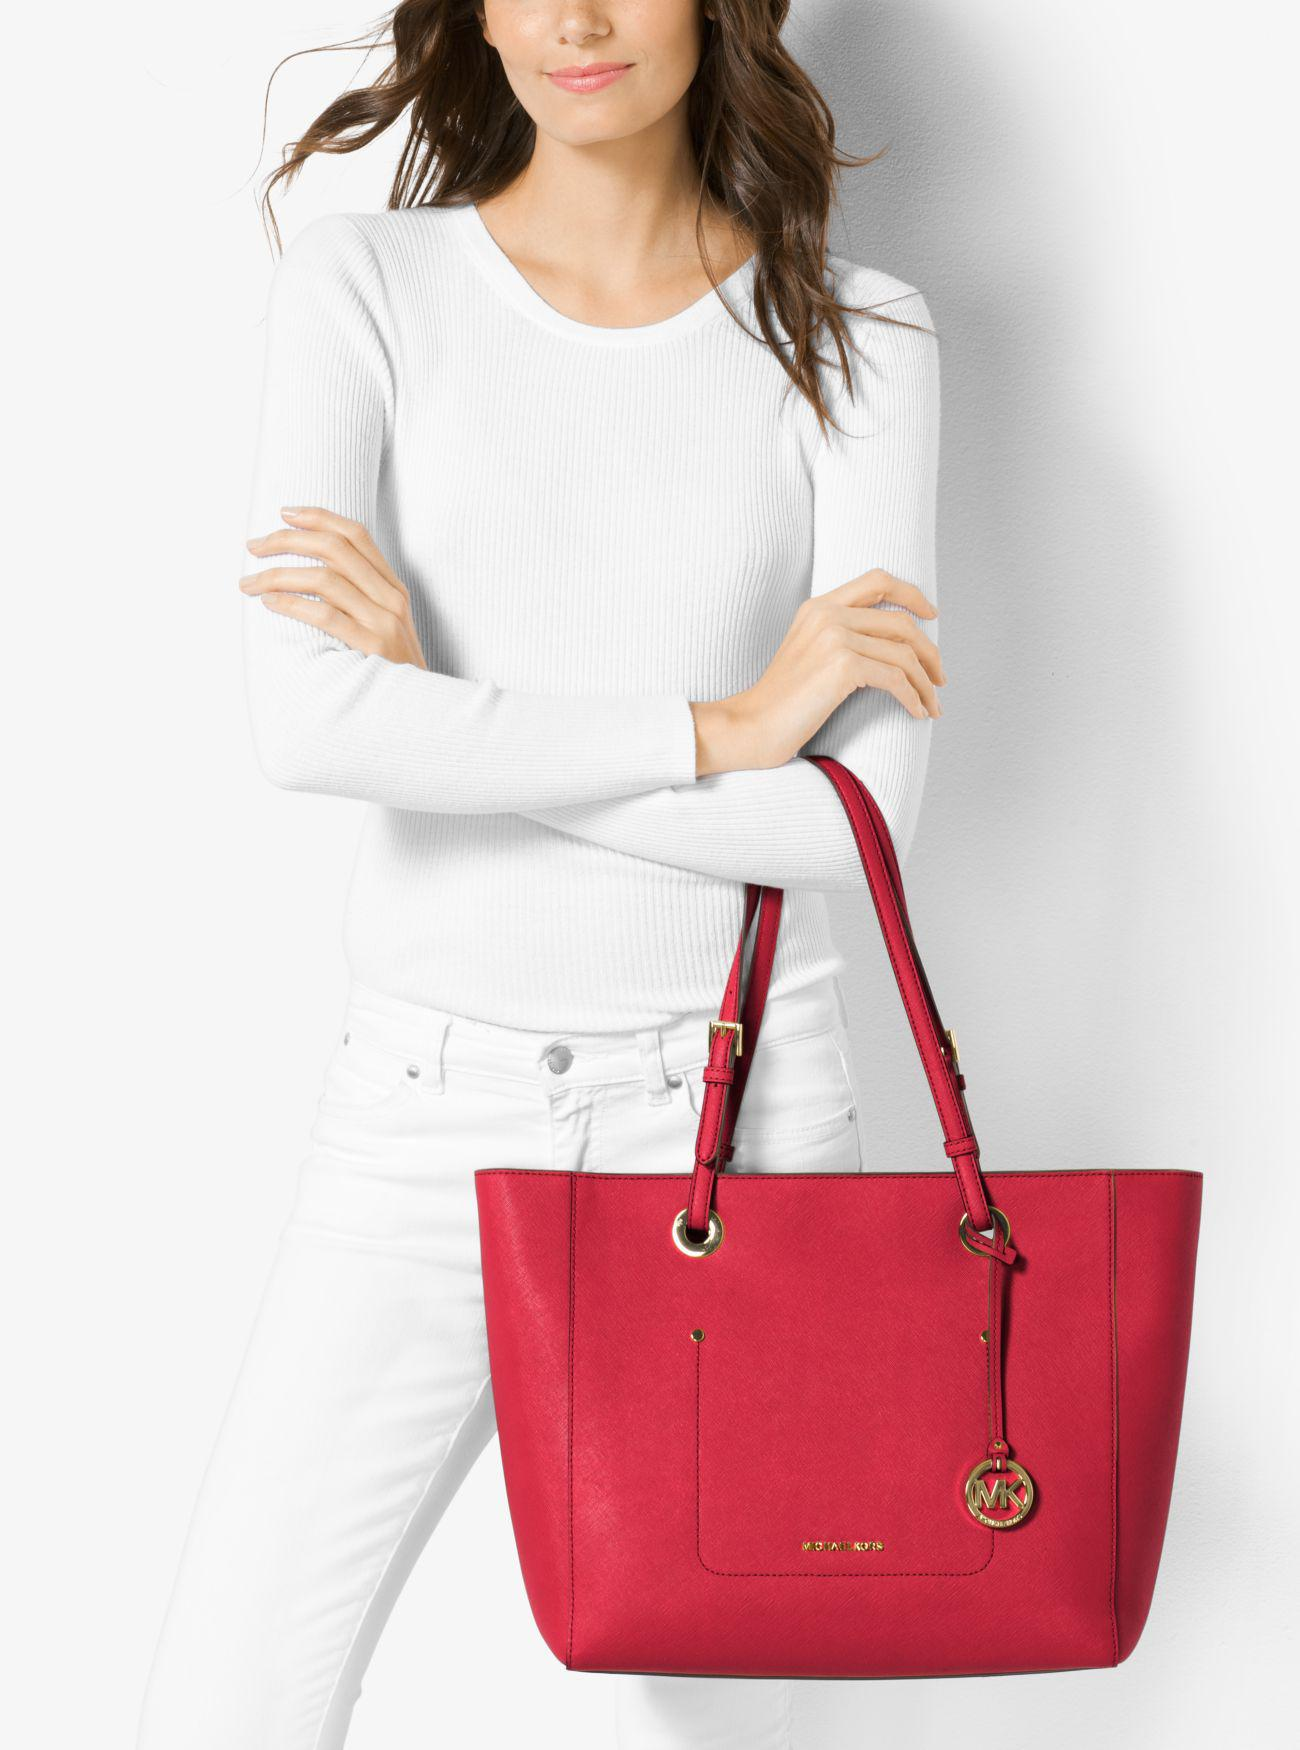 6b14d6100e6f57 Michael Kors Walsh Large Saffiano Leather Tote Bag in Red - Lyst